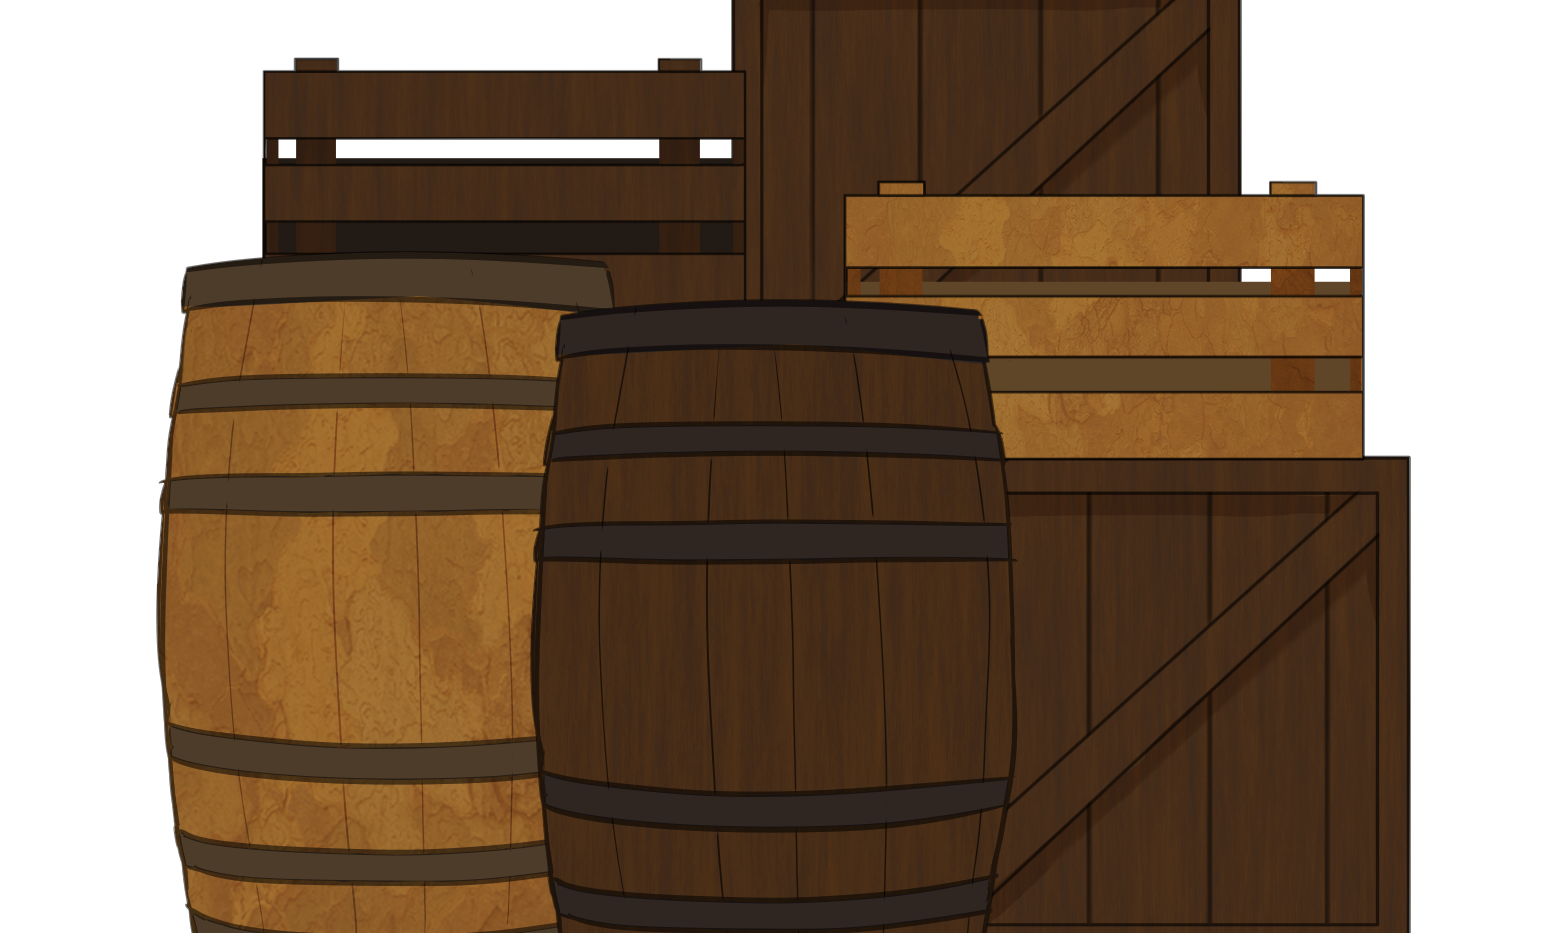 barrel and crate 2.png